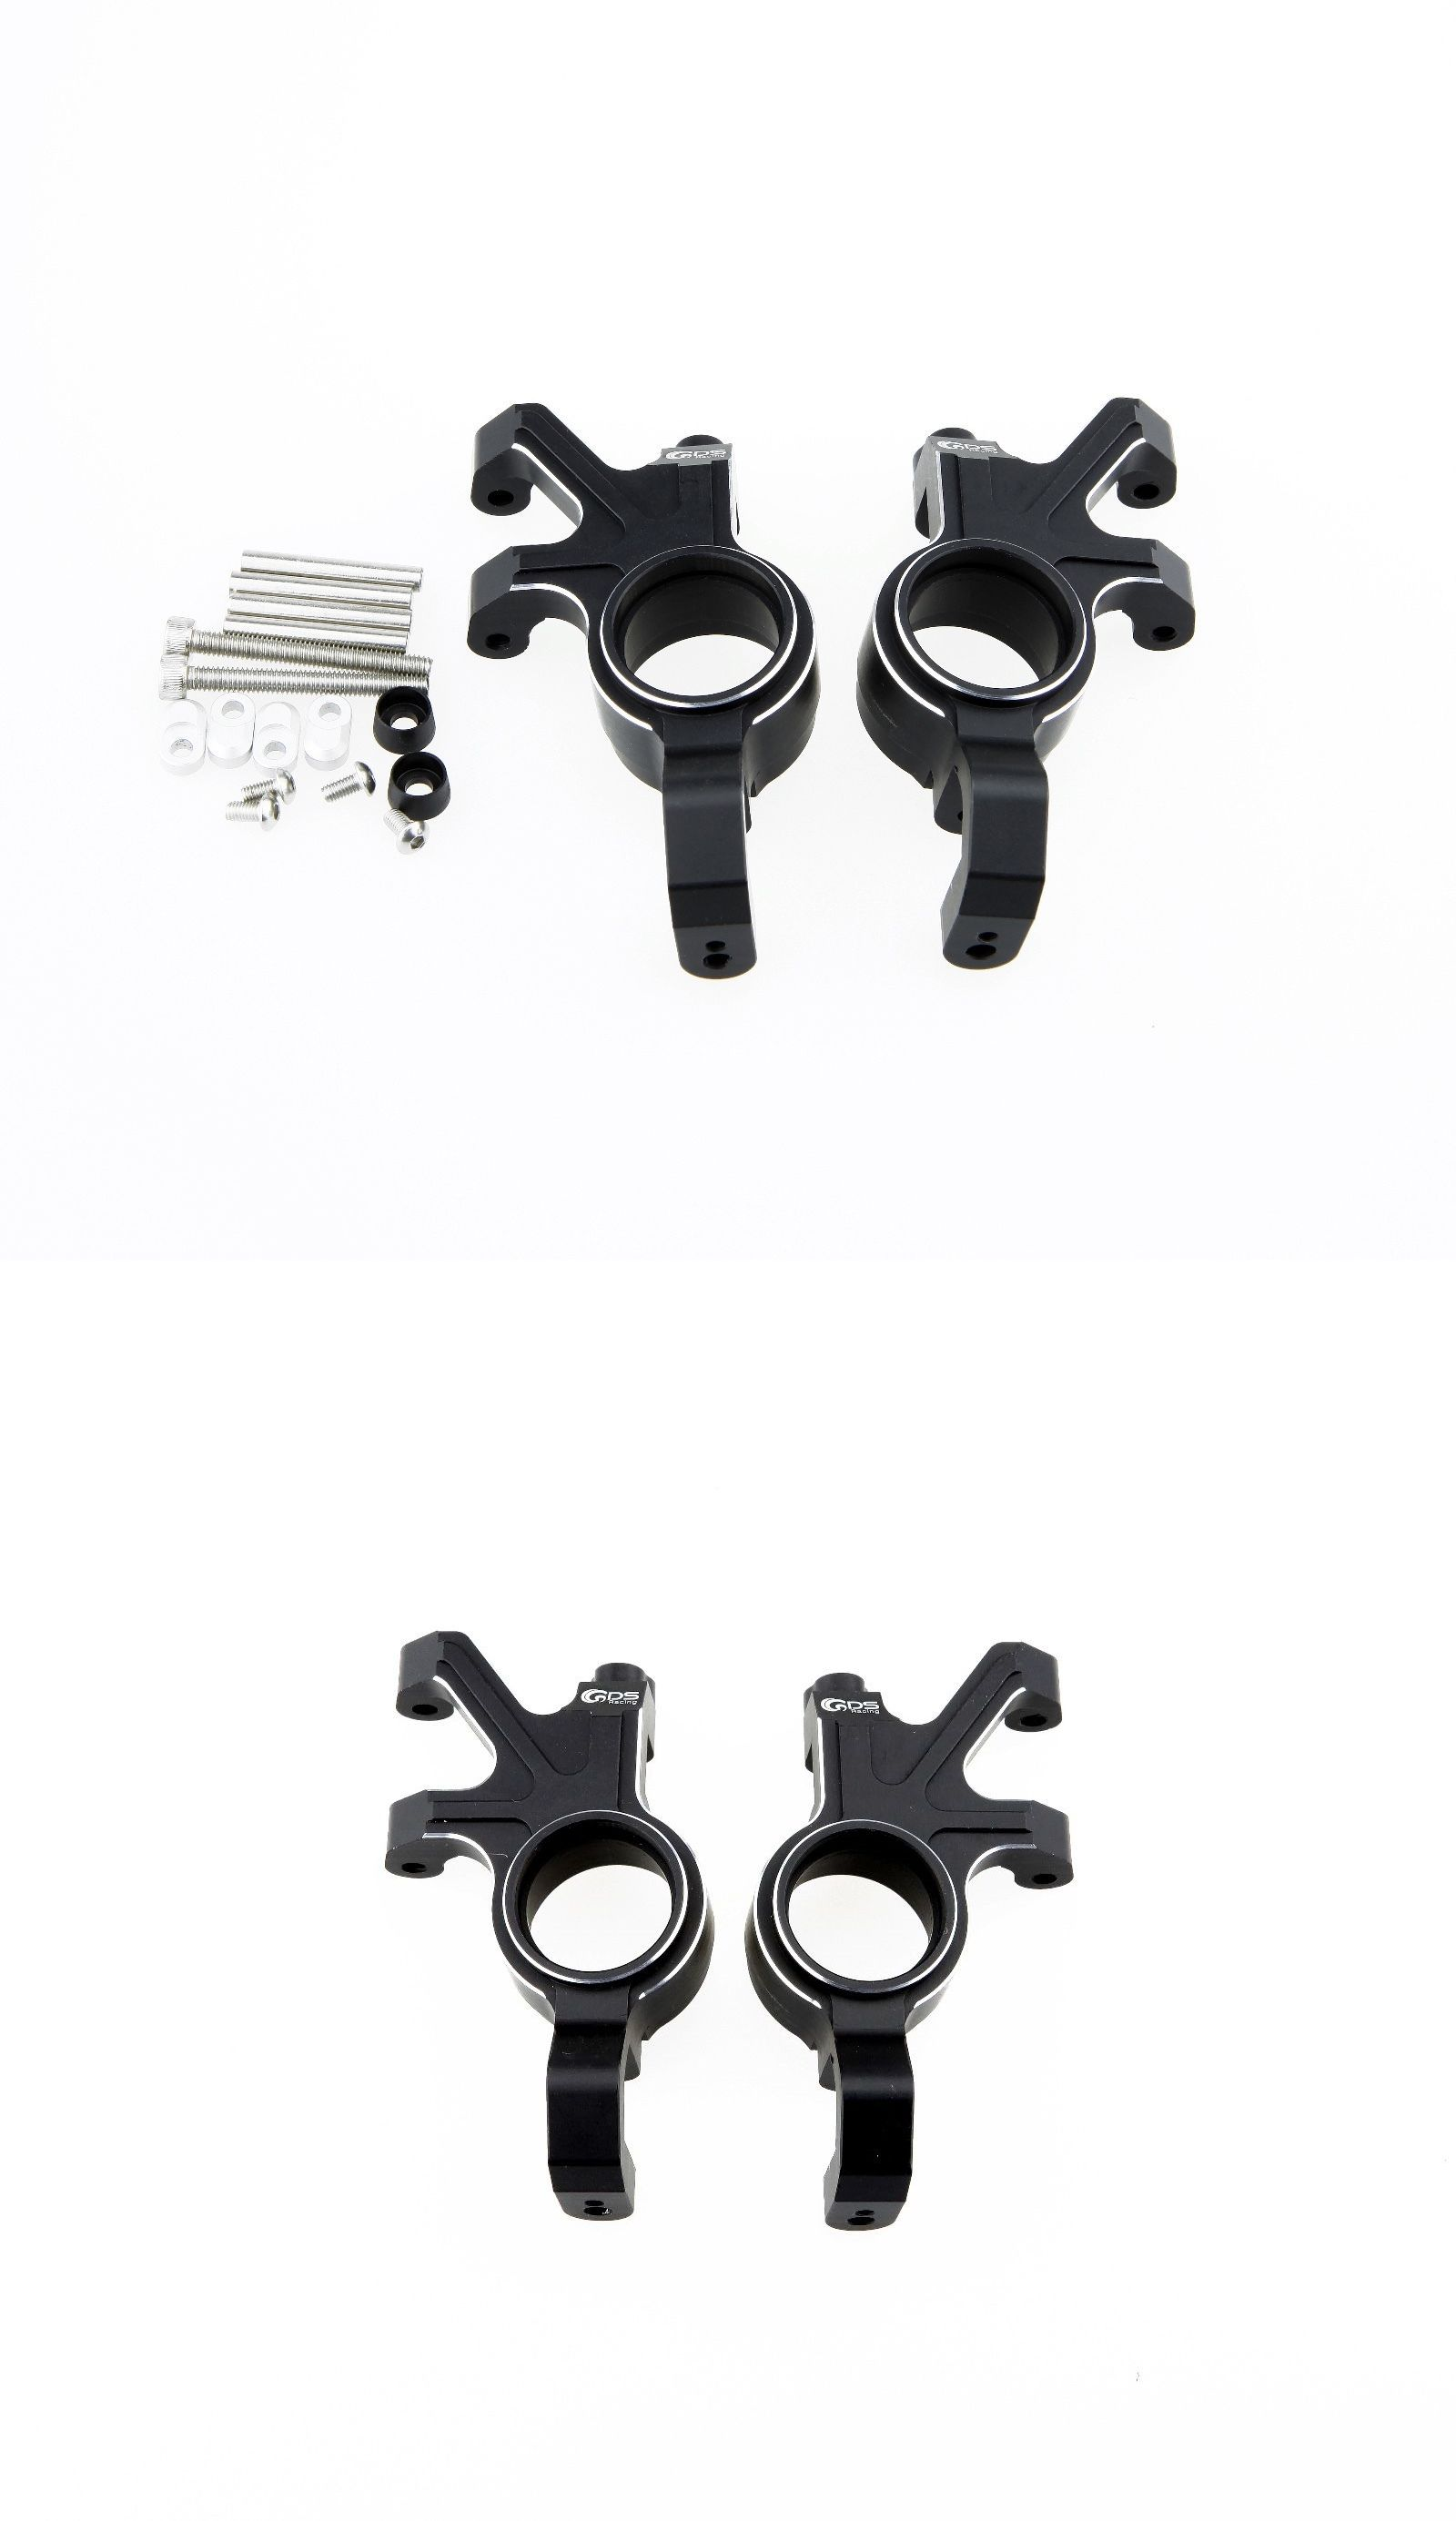 Chassis Plates Frames and Kits 182198: Gds Racing Front Knuckle Arms ...